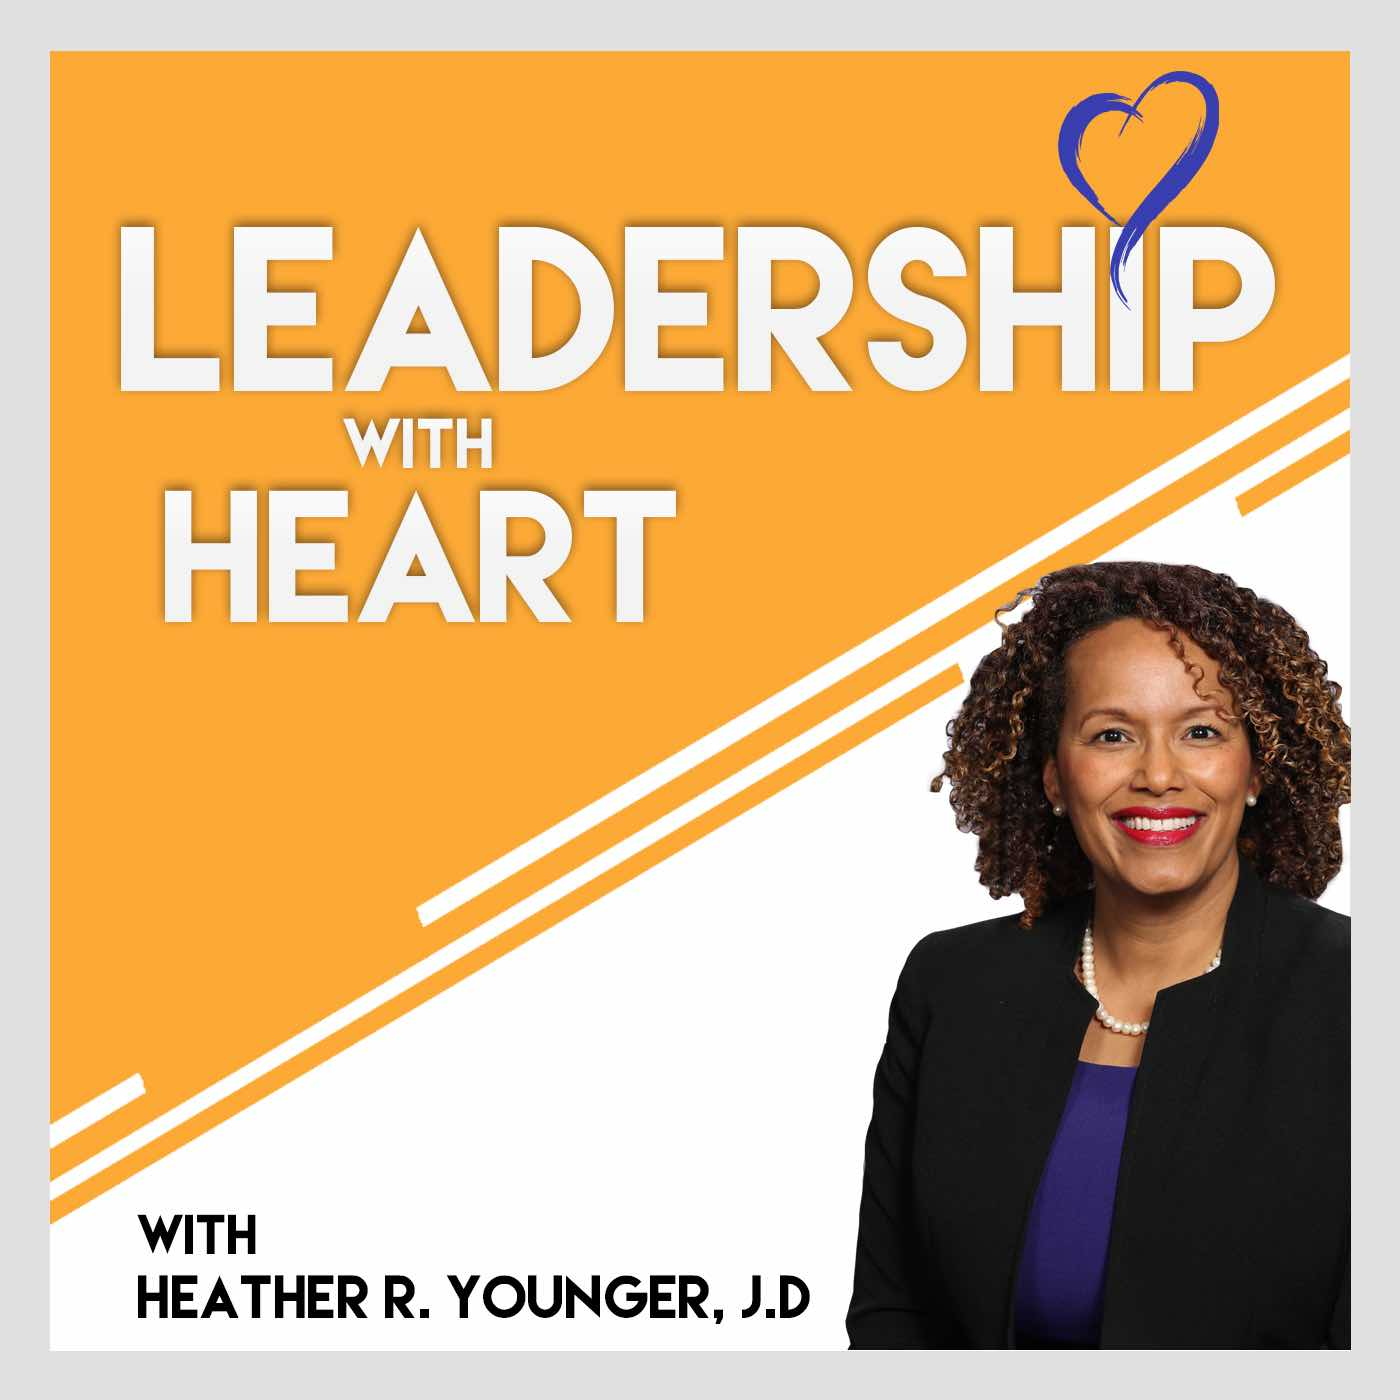 122: Leaders with Heart That We All Get Better One Step At A Time